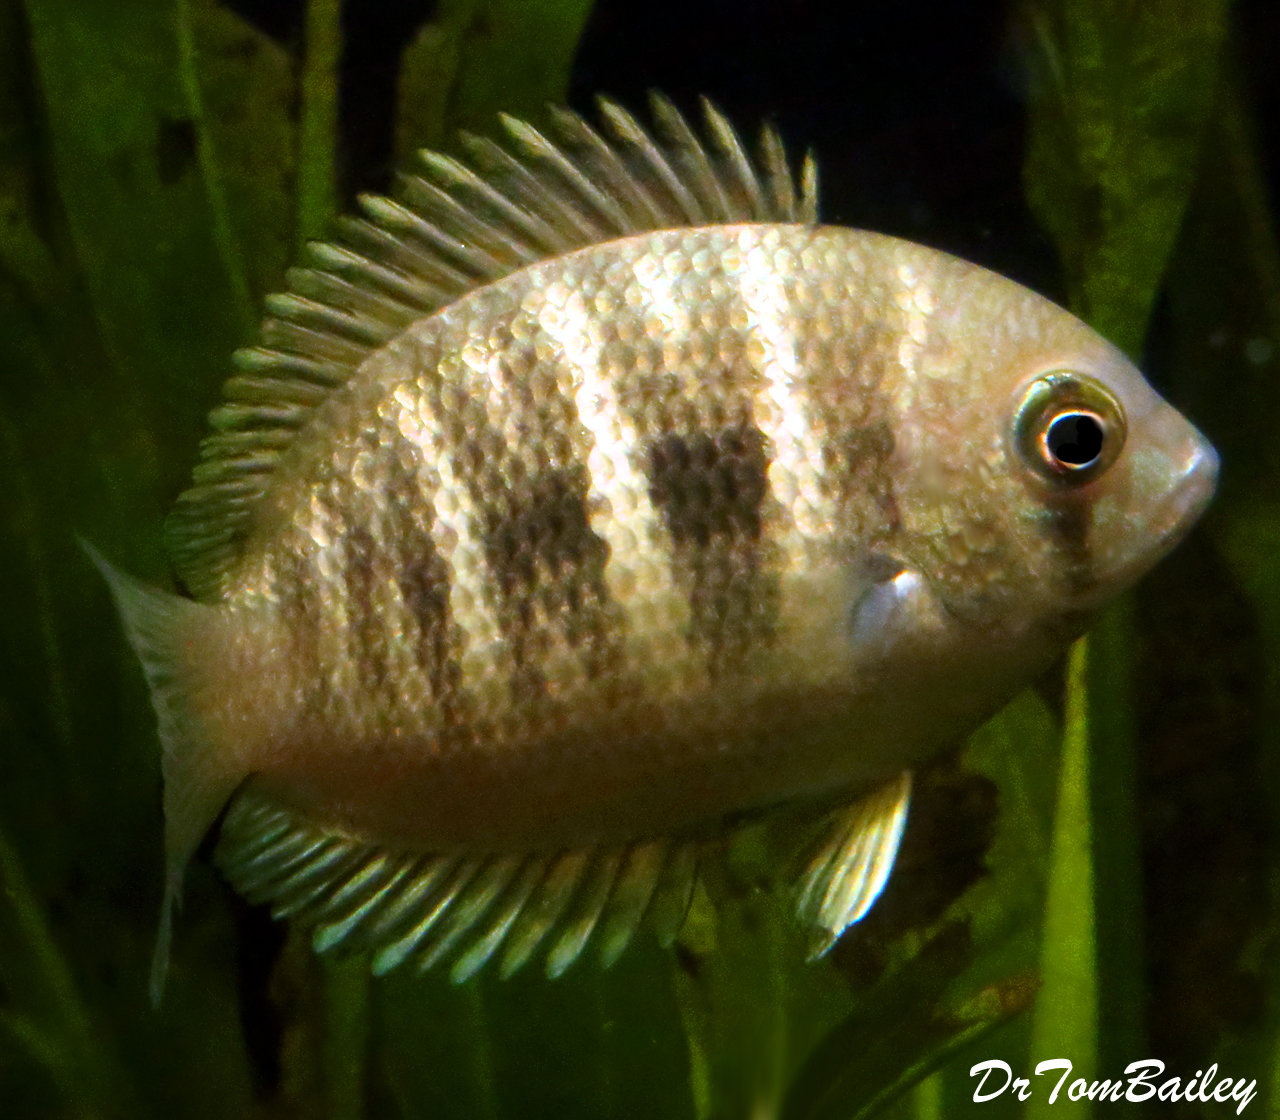 "Premium Very Rare, Canara Pearlspot Chromide Cichlid, 2"" to 2.5"" long"